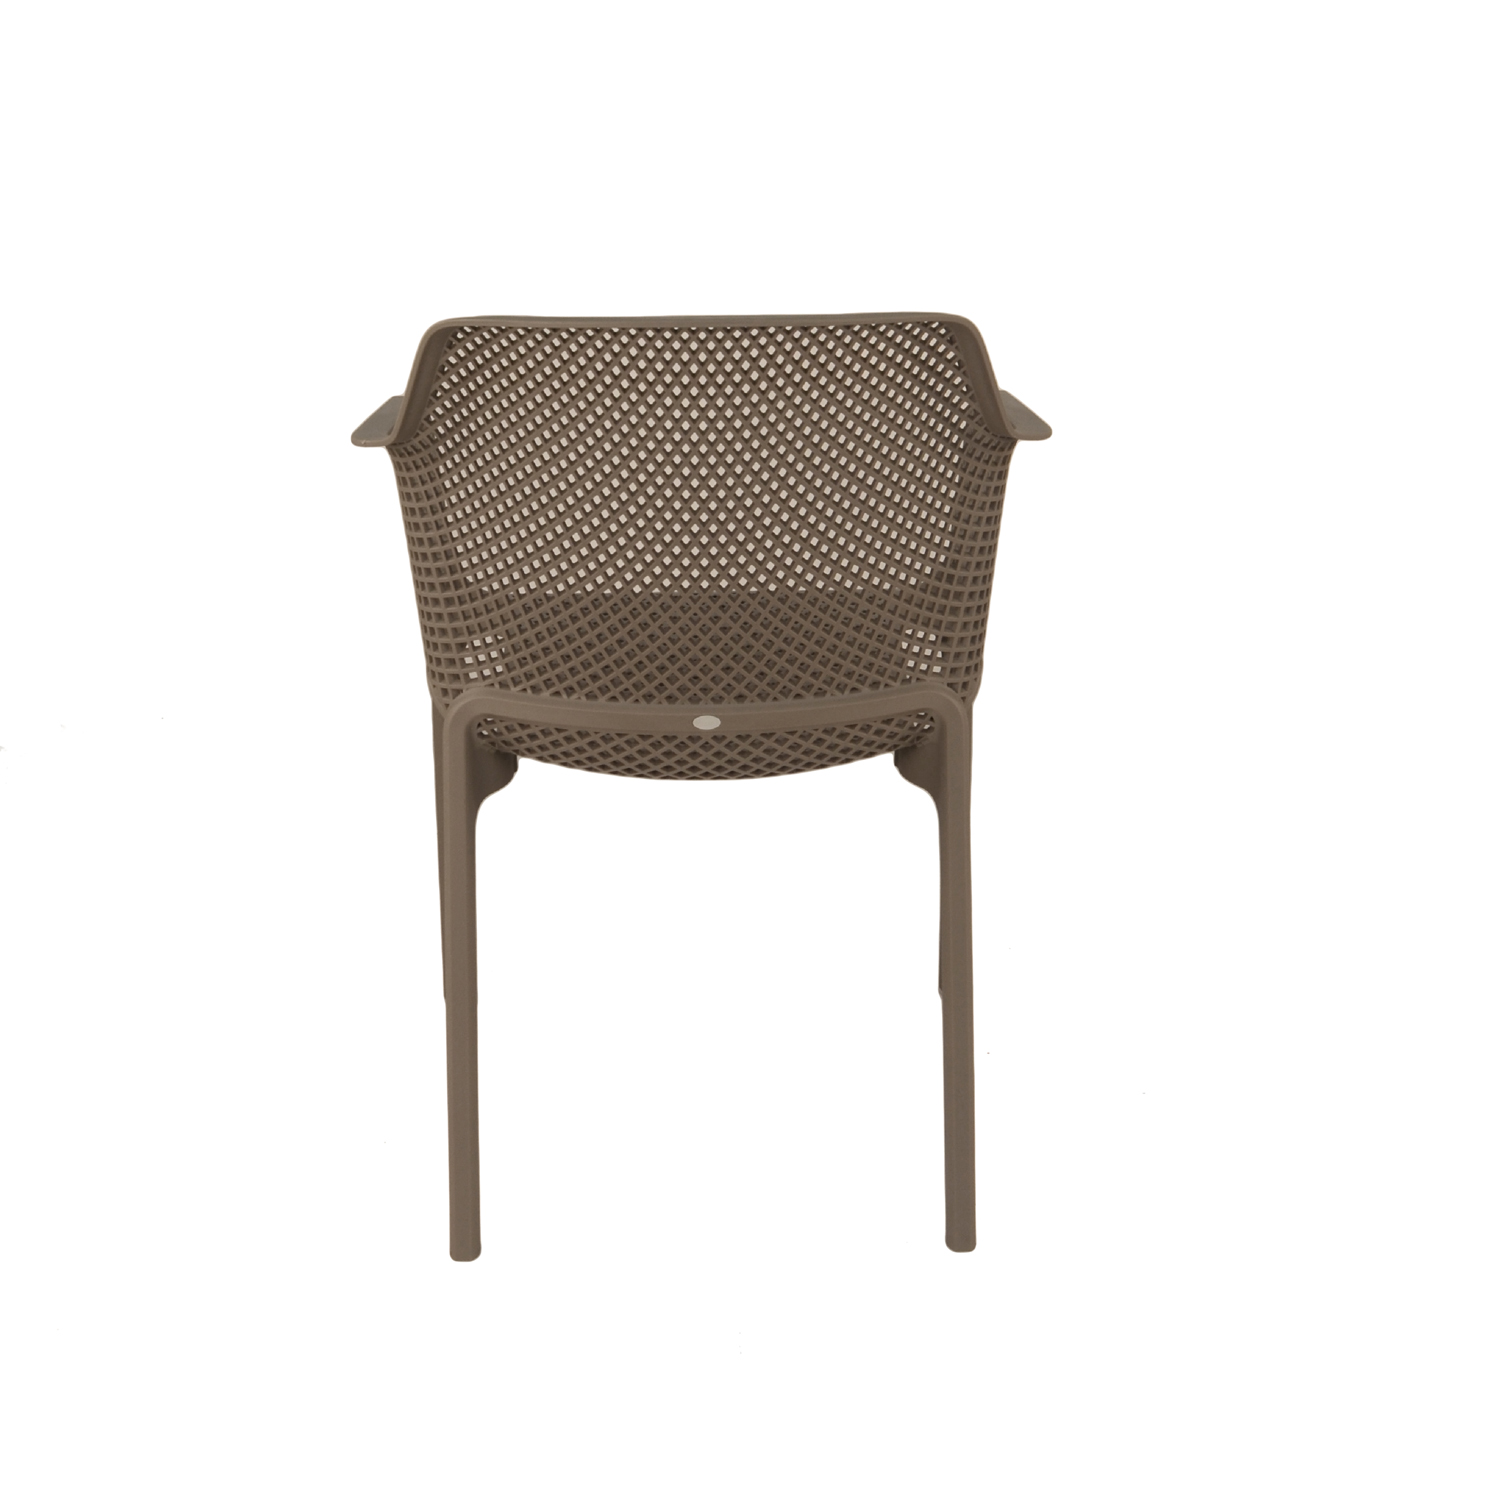 Net Chair - Turtle Dove Grey back